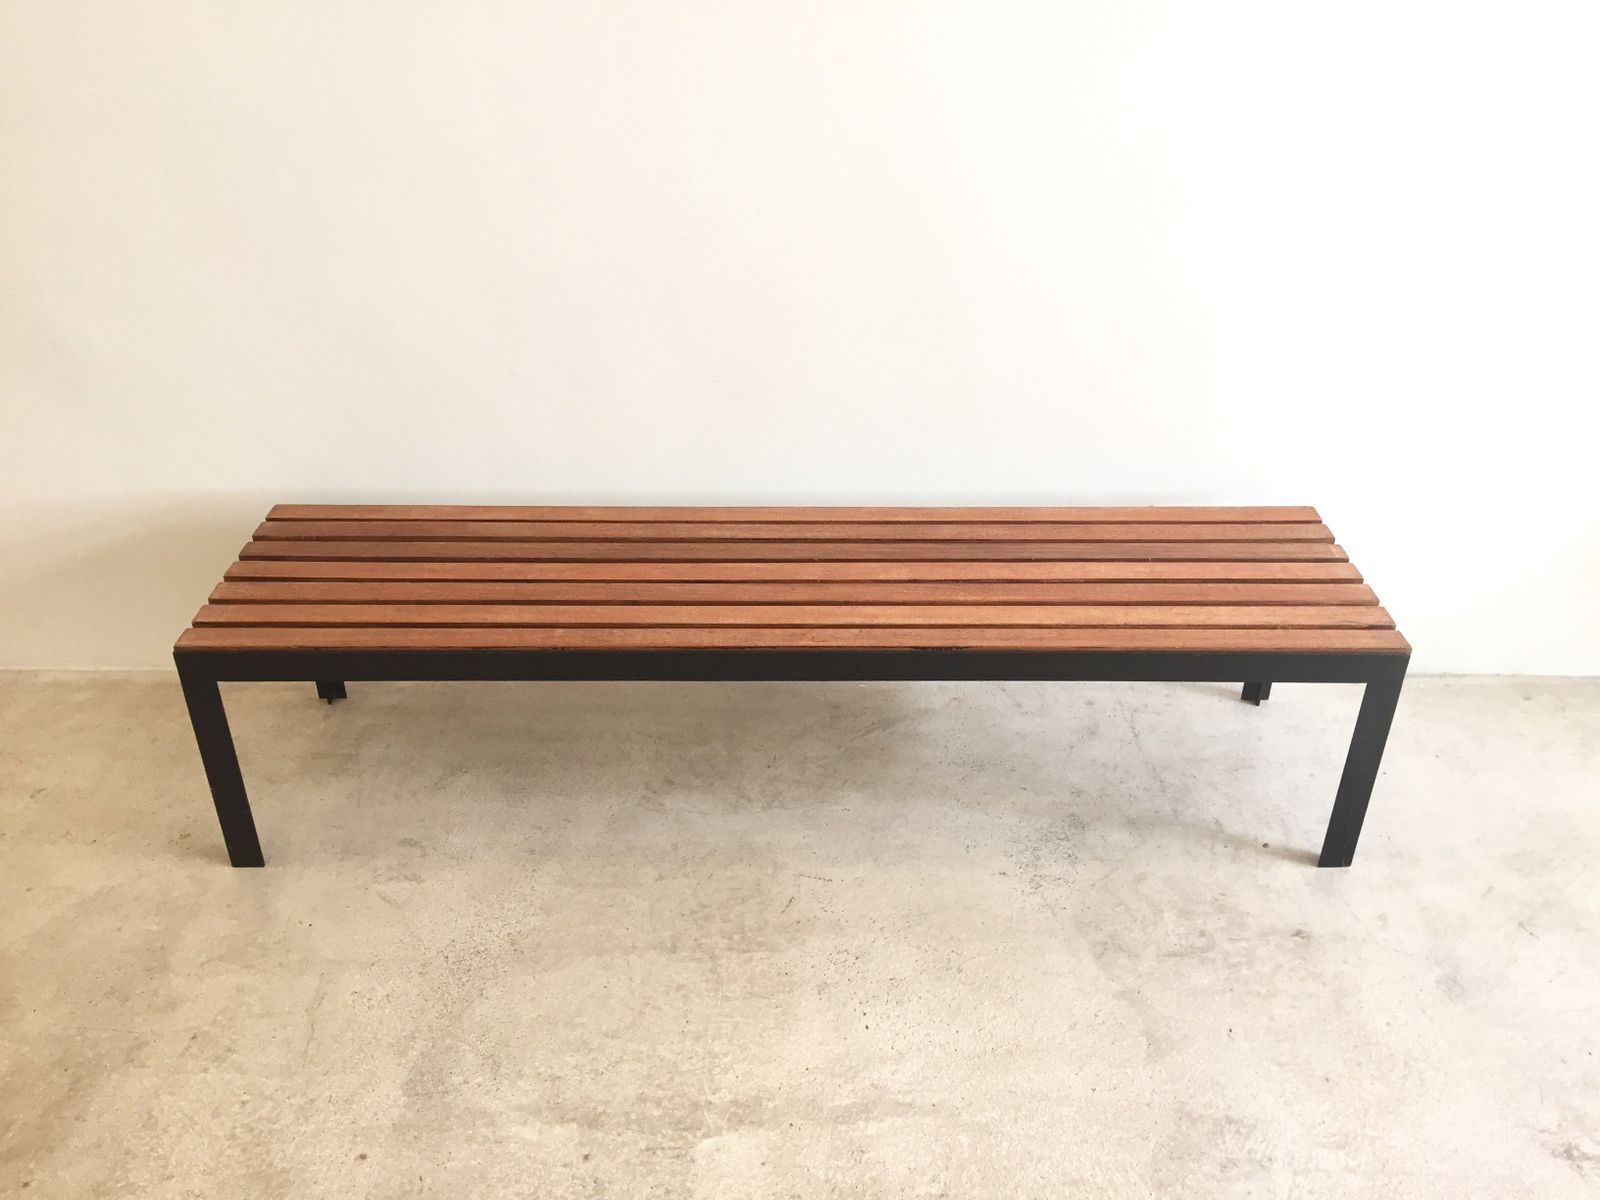 Modernist T Slat Bench 1965 for sale at Pamono